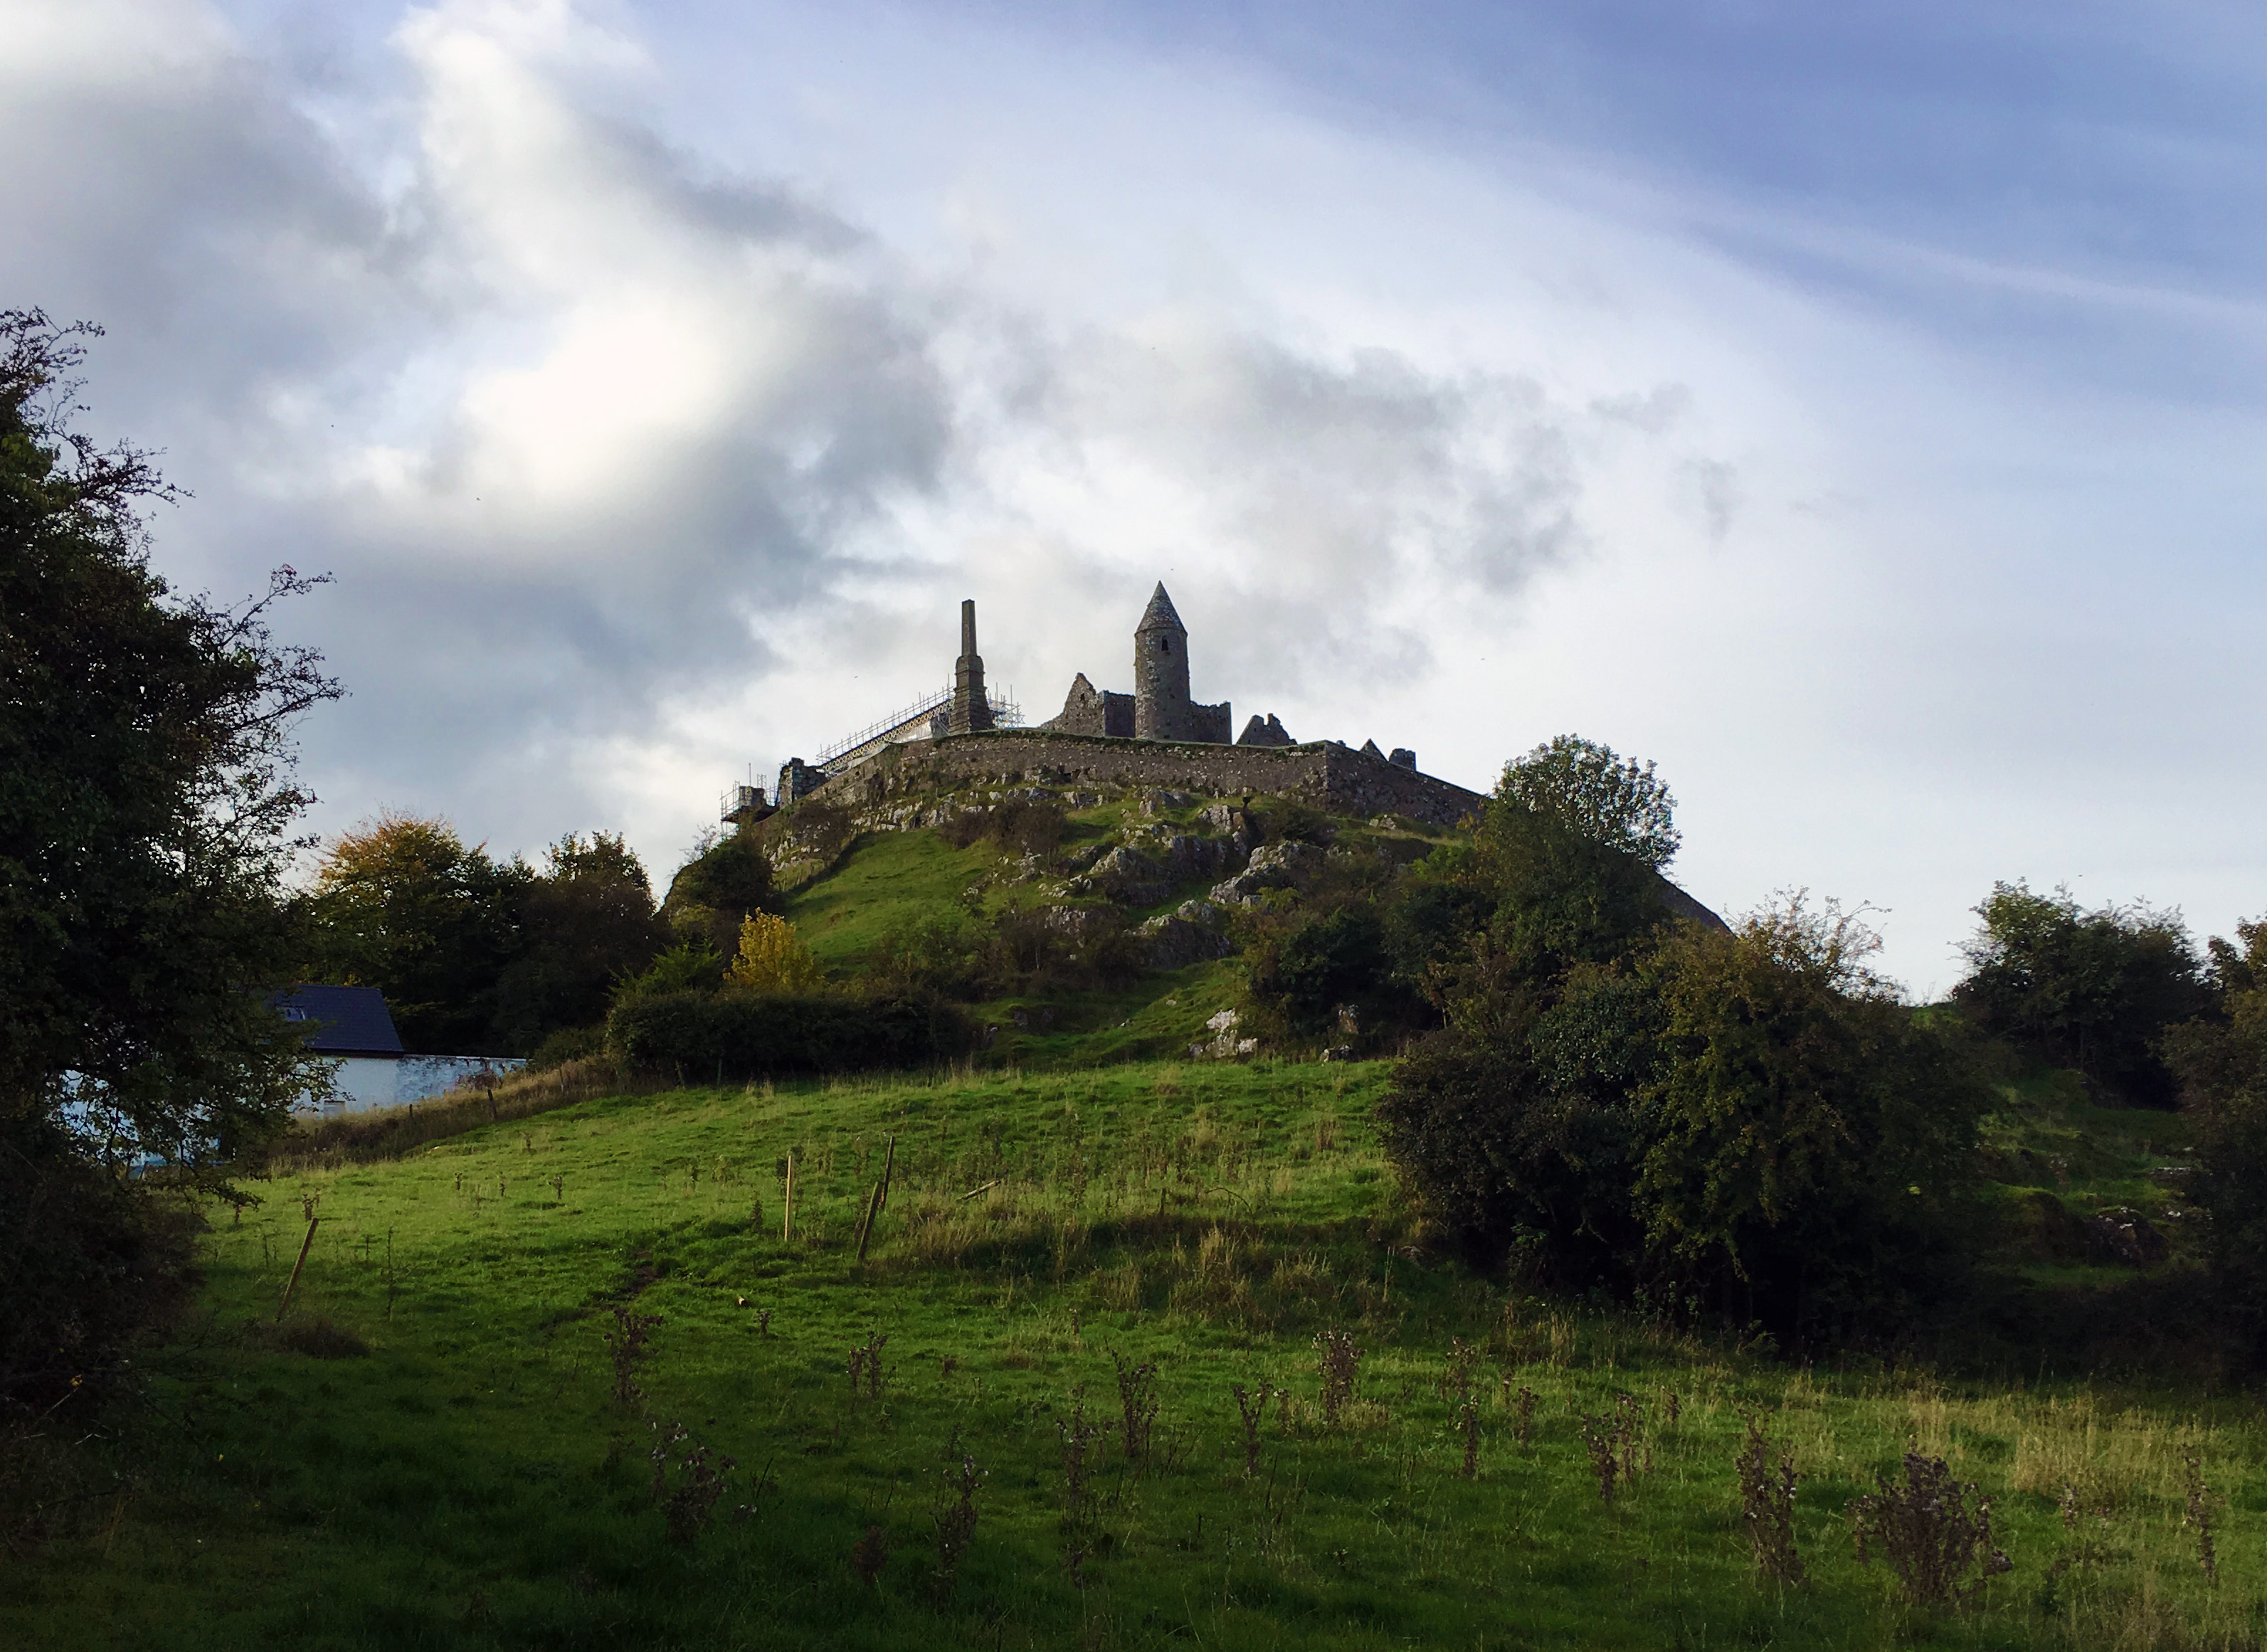 The Rock of Cashel, Tipperary Ireland